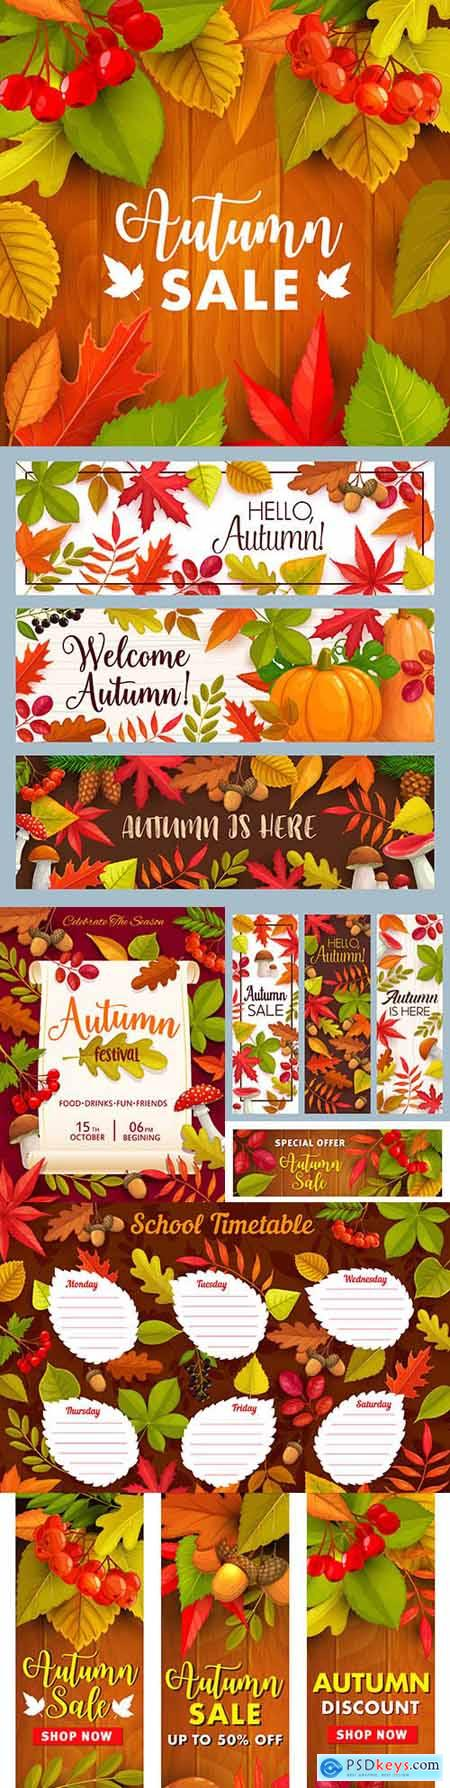 Autumn sale season discount and price illustration poster